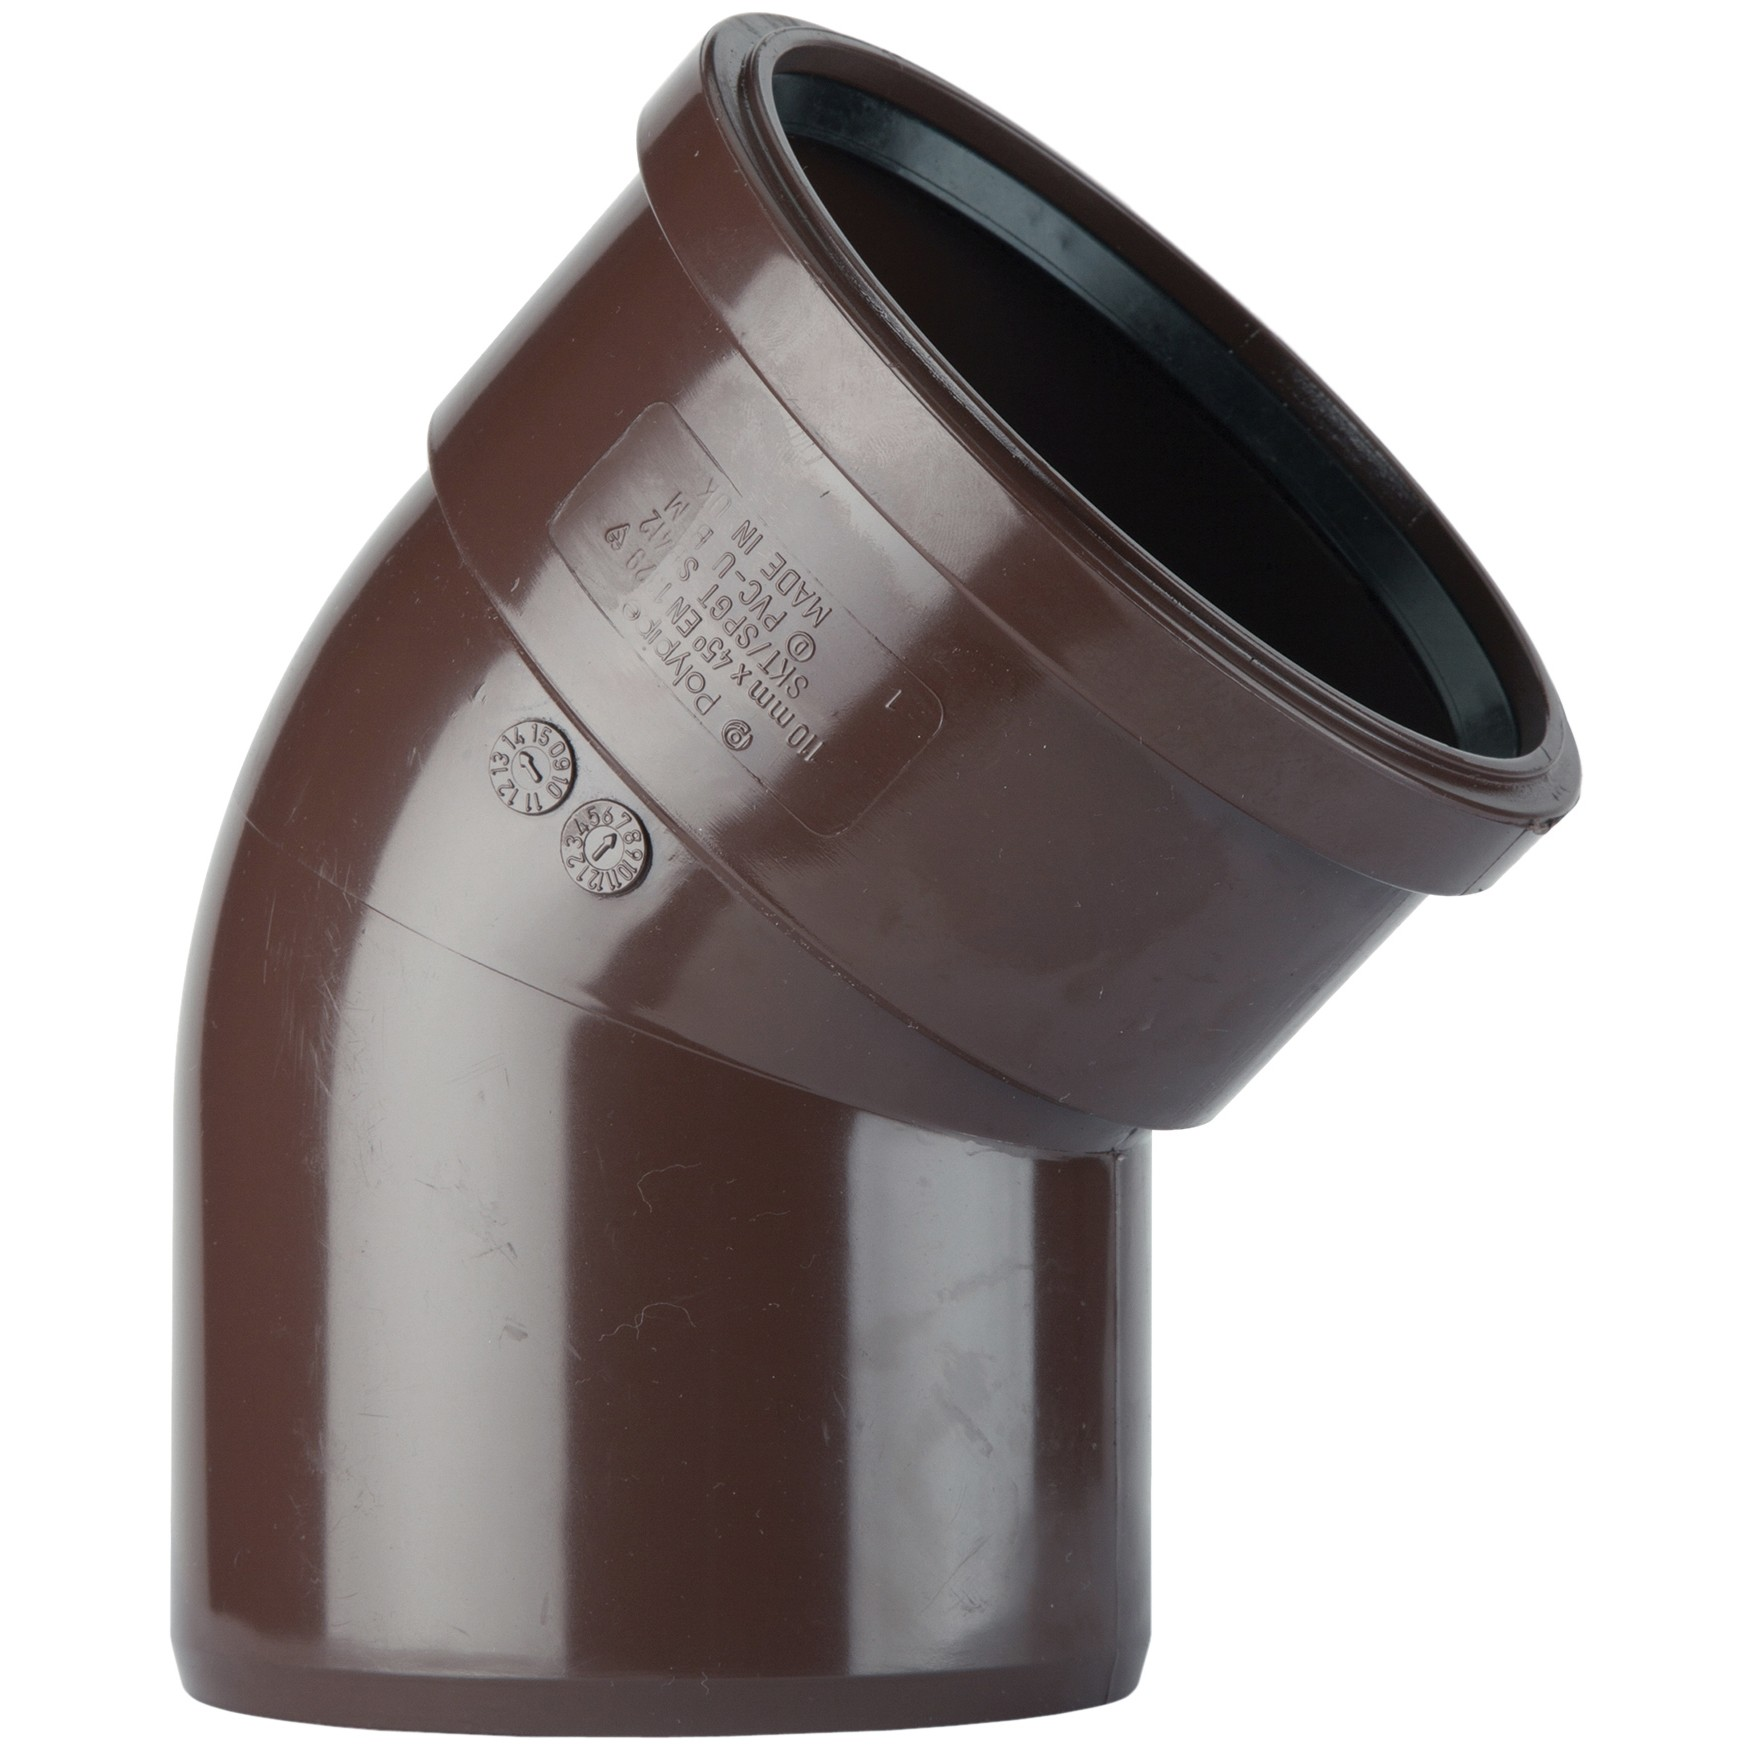 Polypipe 110mm Soil Single Socket 135 Degree Bend - Brown